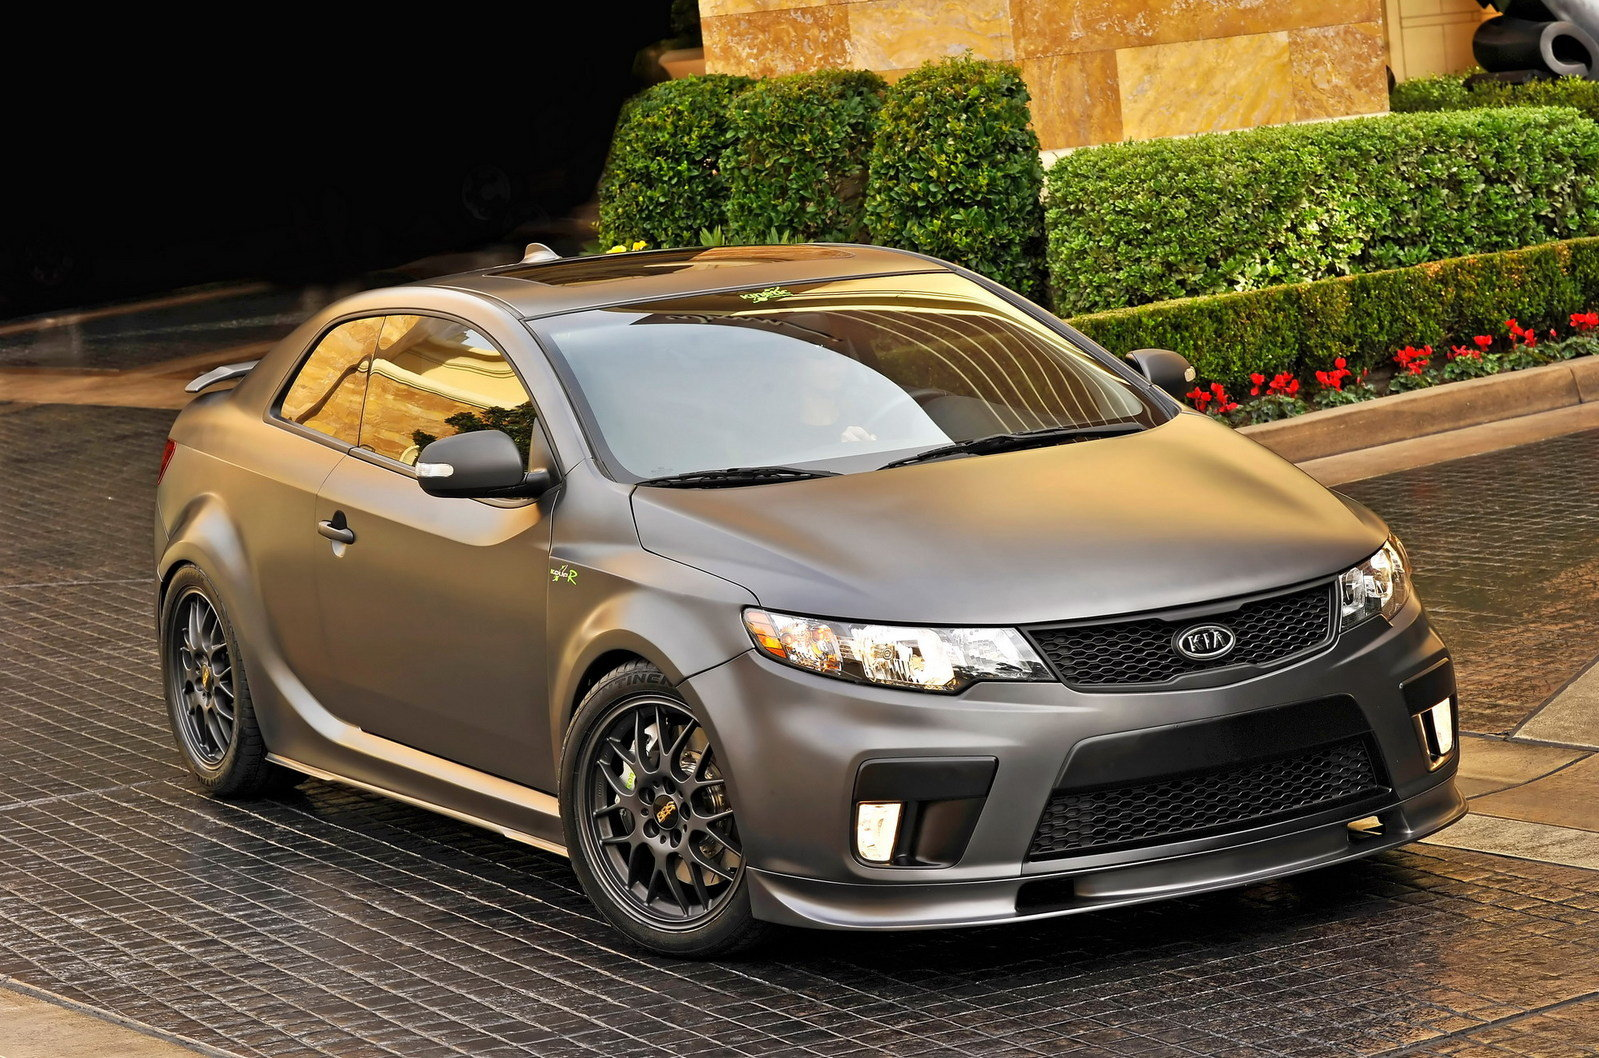 2010 kia forte koup type r concept picture 380106 car review top. Black Bedroom Furniture Sets. Home Design Ideas